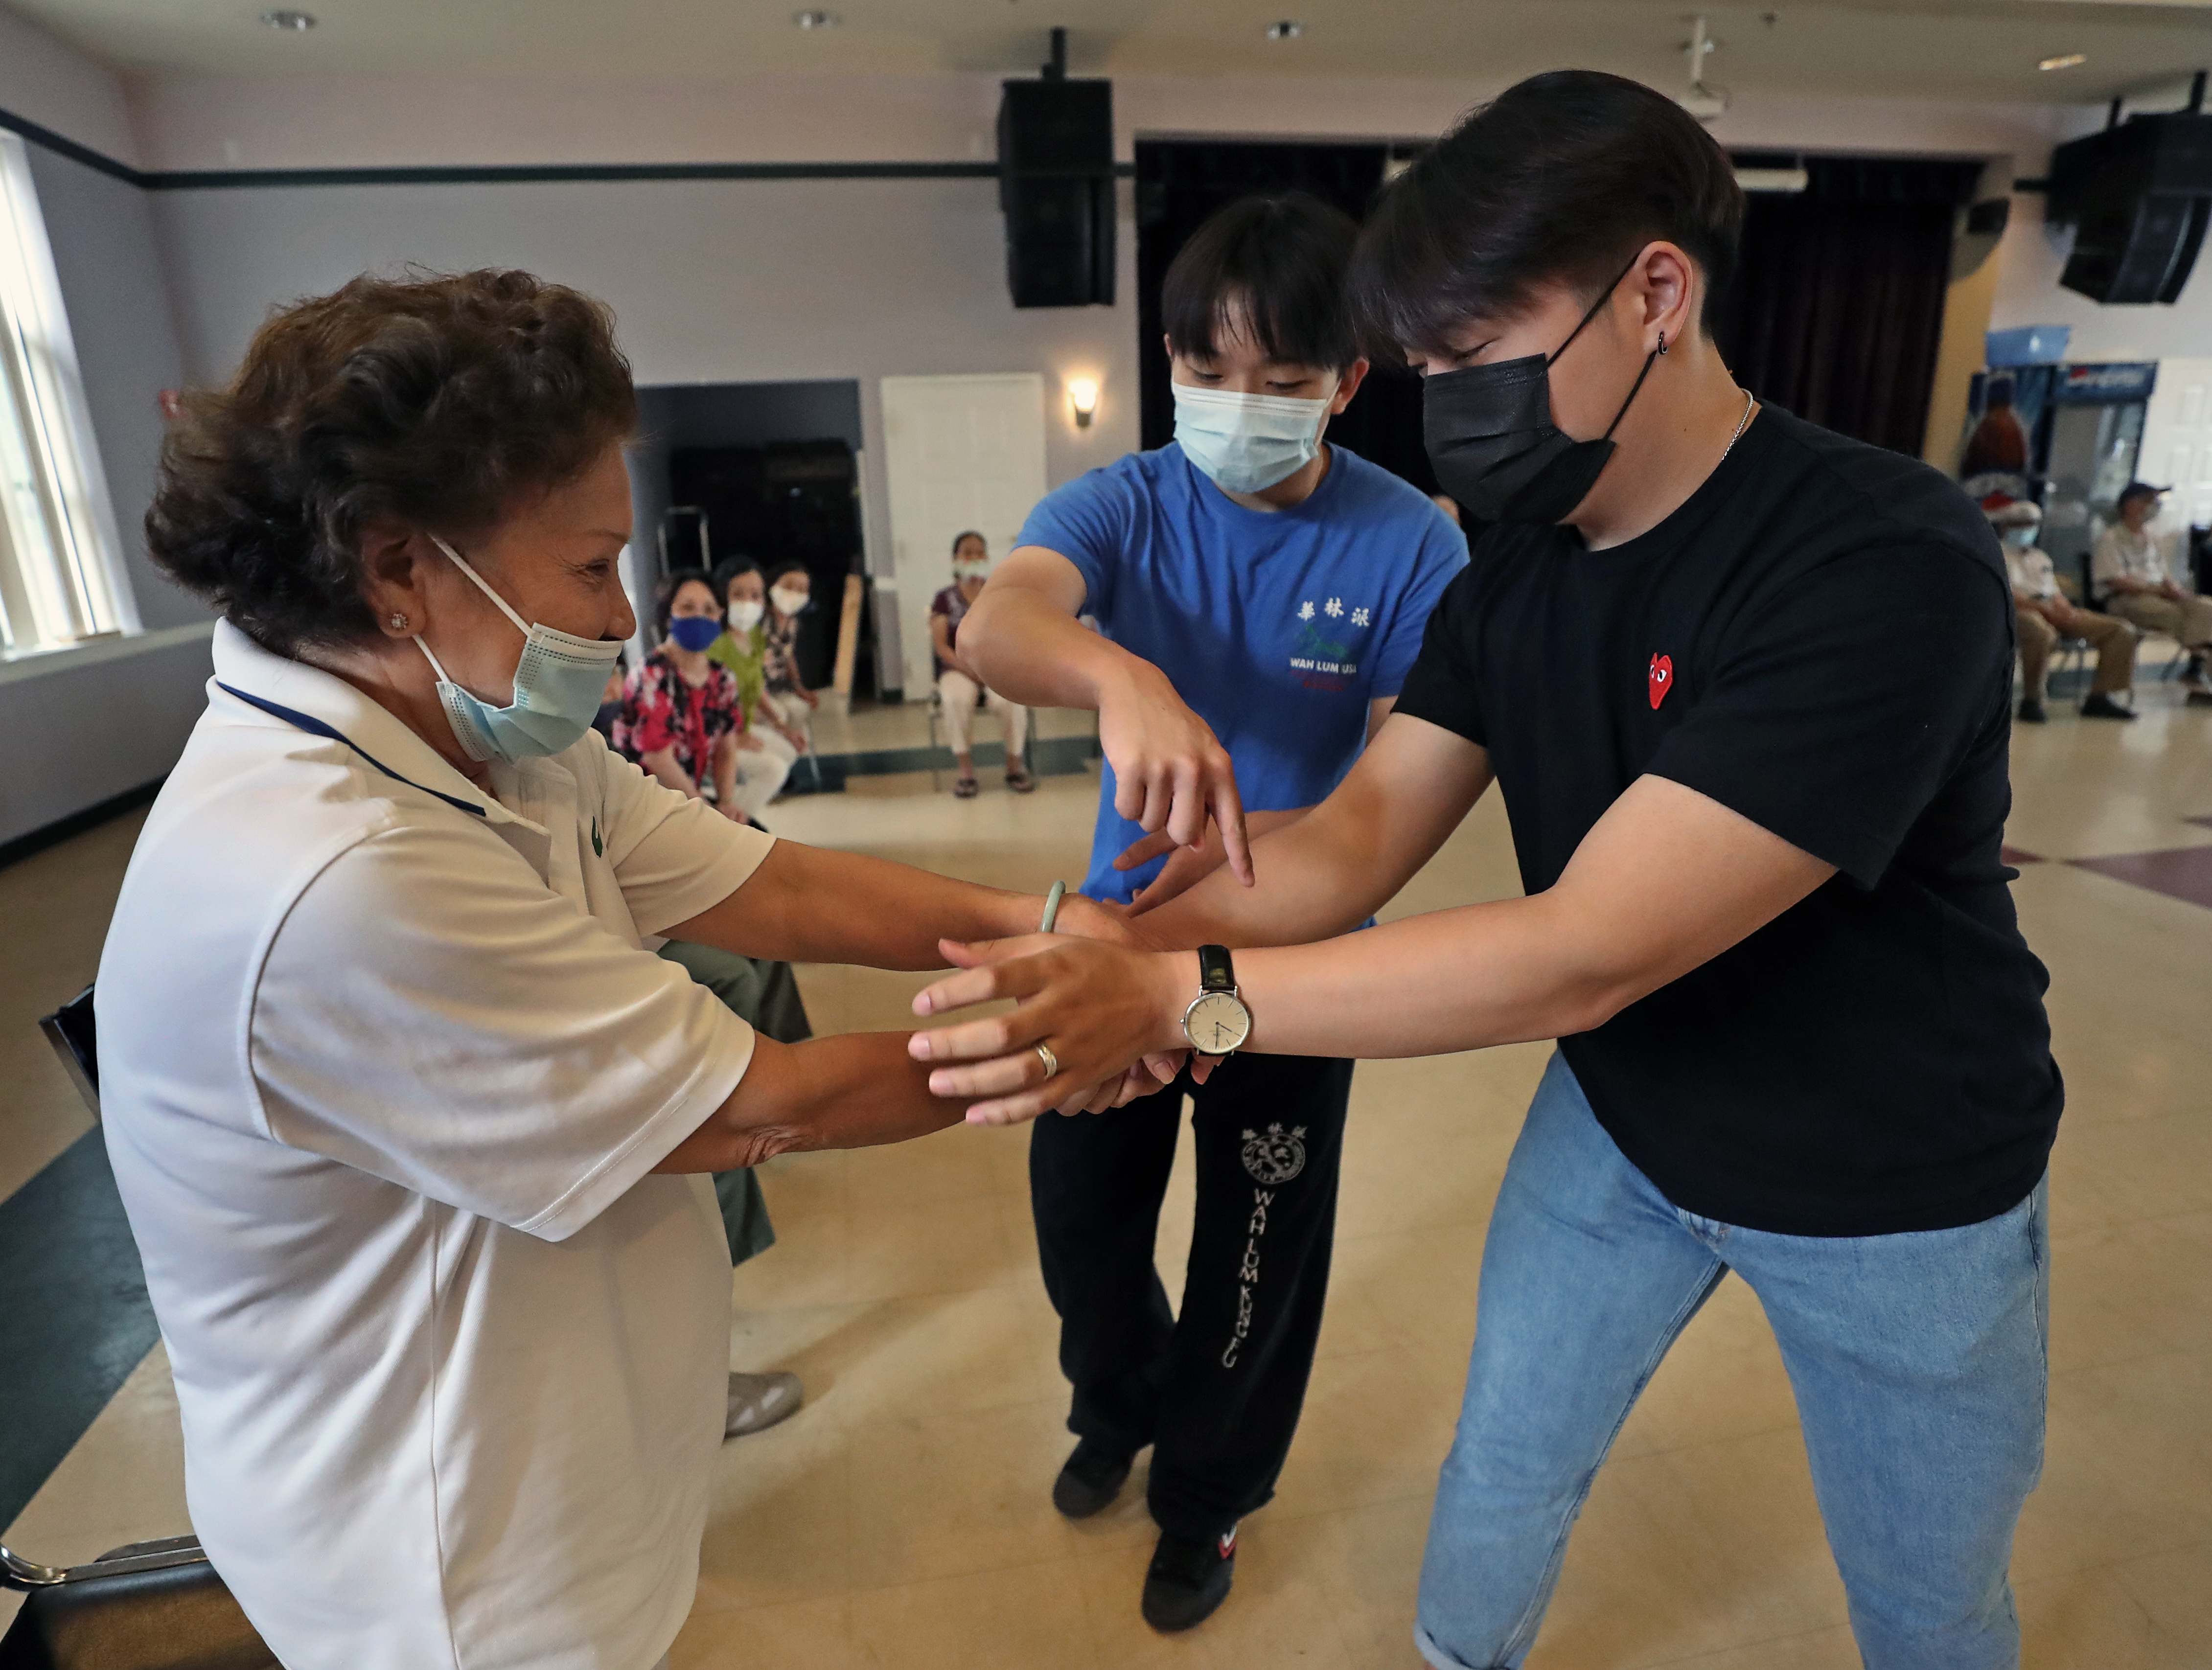 Linh Mat, 88, was shown how to break loose from an assailant by Thomas Tran (center) and Nhan Truong at VietAID.